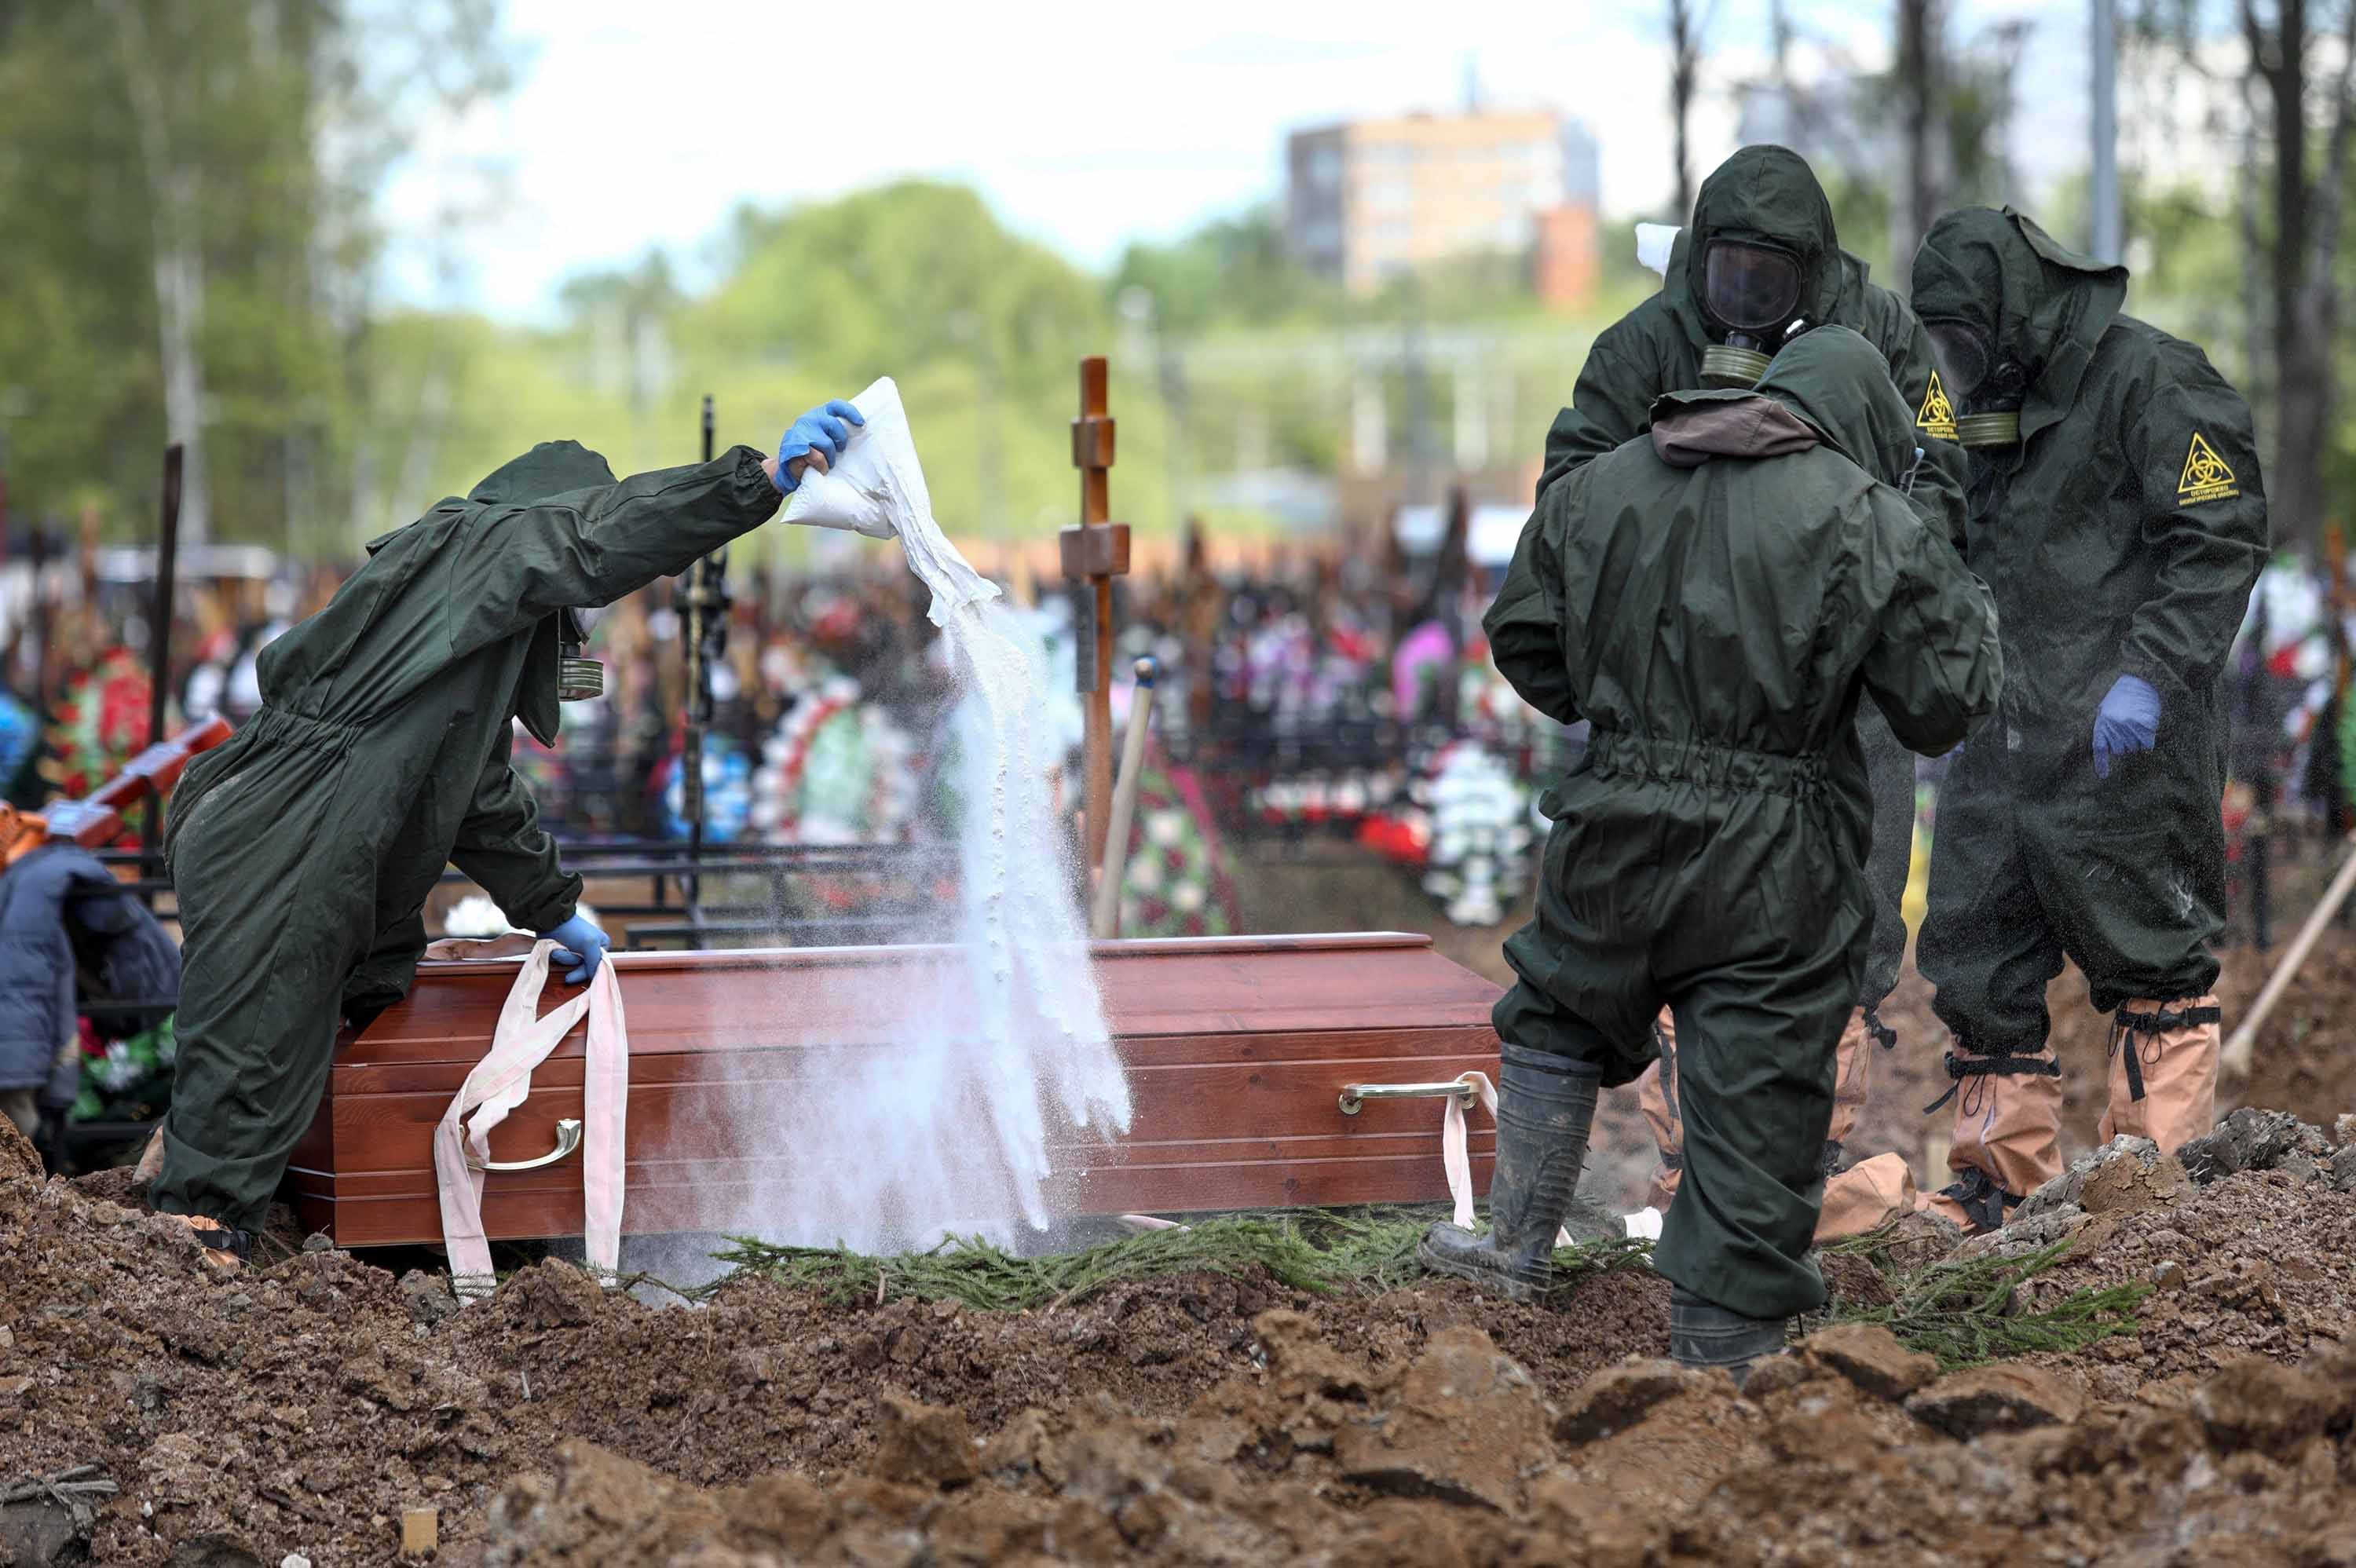 Cemetery workers disinfect a grave as they bury a COVID-19 victim in the Butovskoye cemetery outside Moscow, Russia on May 15, 2020.